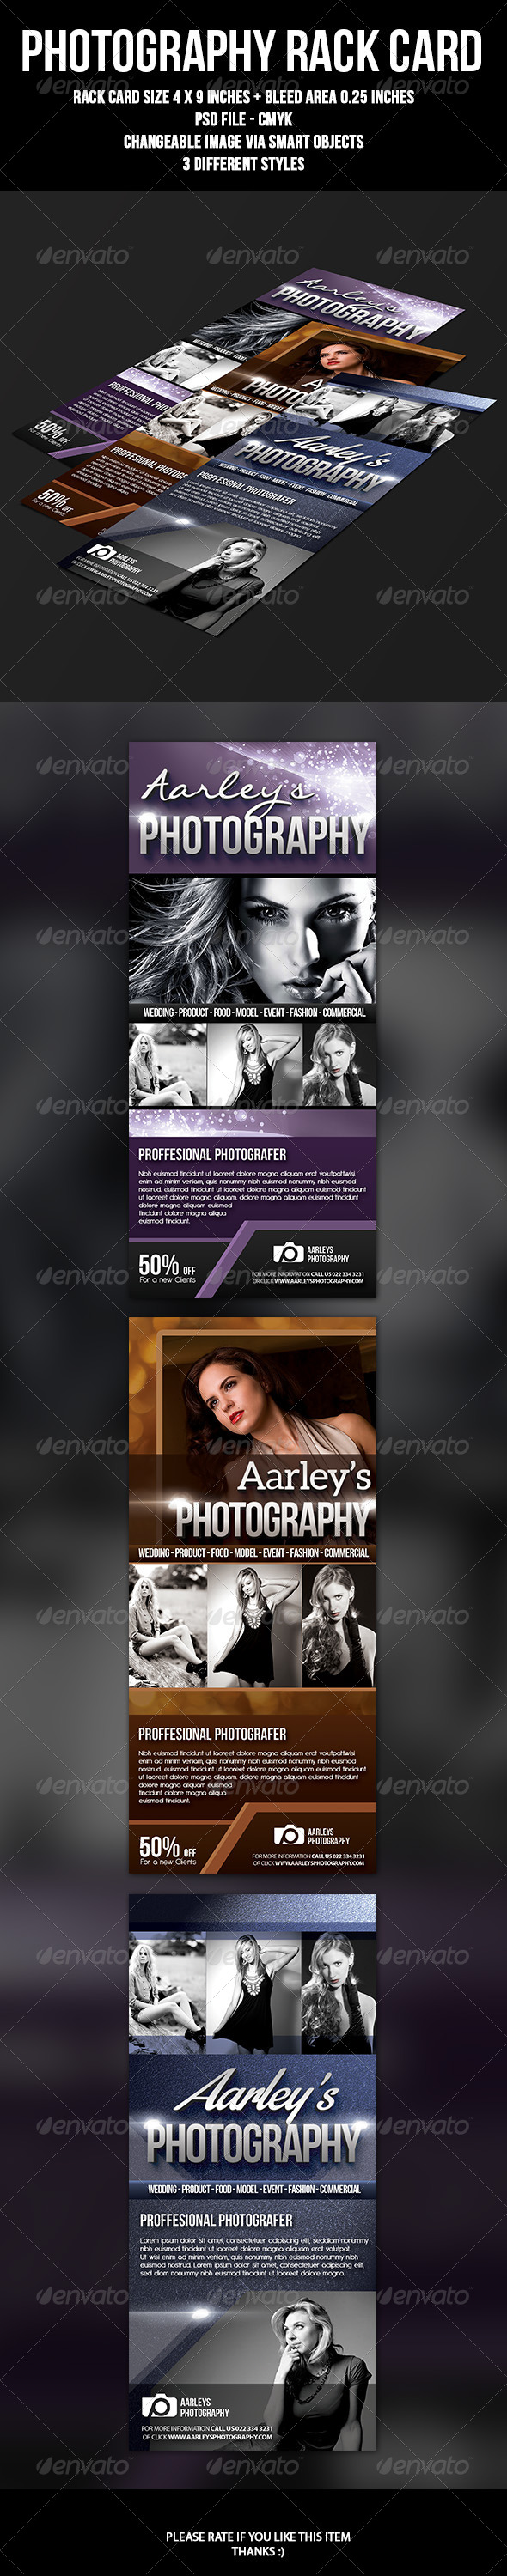 GraphicRiver Photography Rack Card 7089351